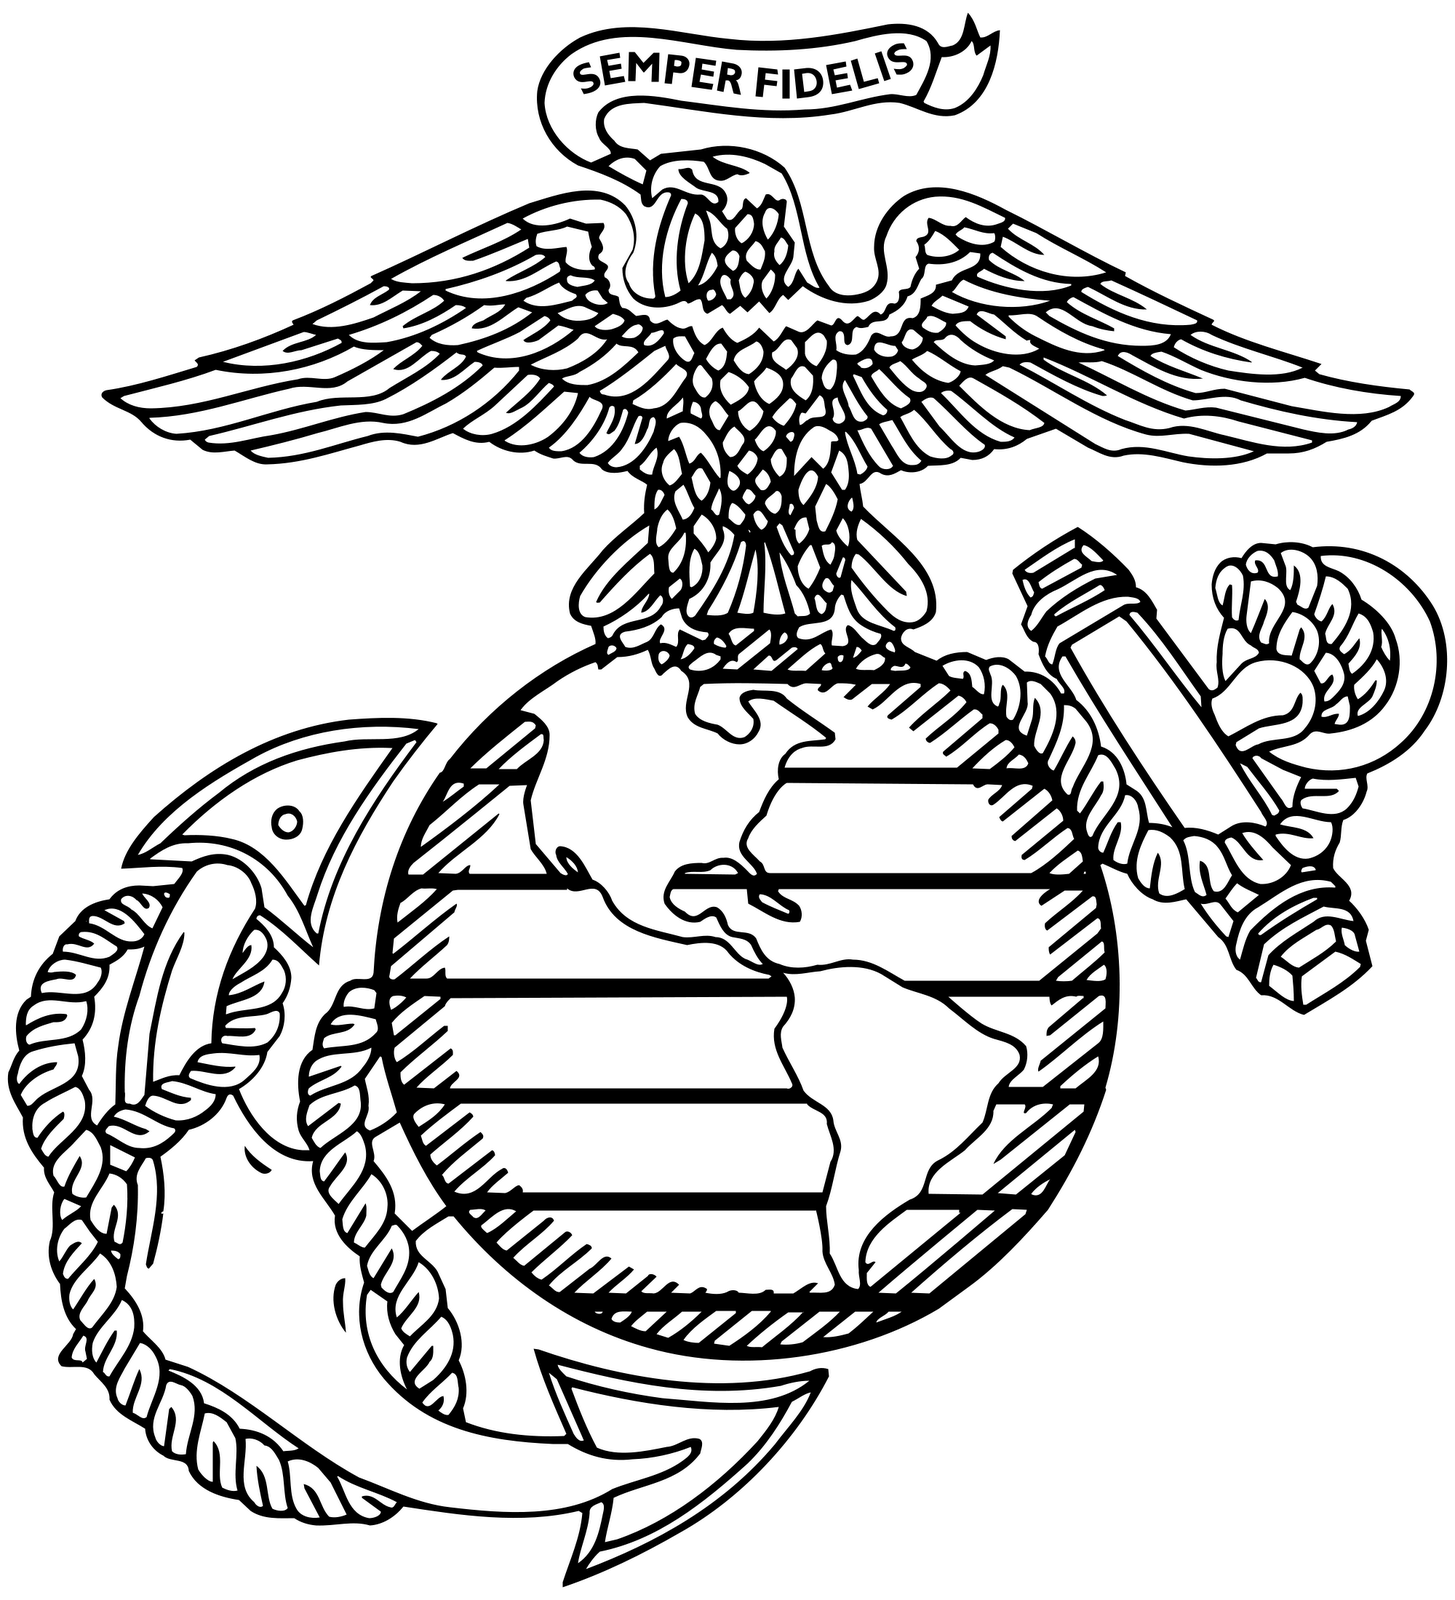 Adult Beauty Marines Coloring Pages Gallery Images beauty coloring pages of marines az united states symbols related keywords suggestions gallery images